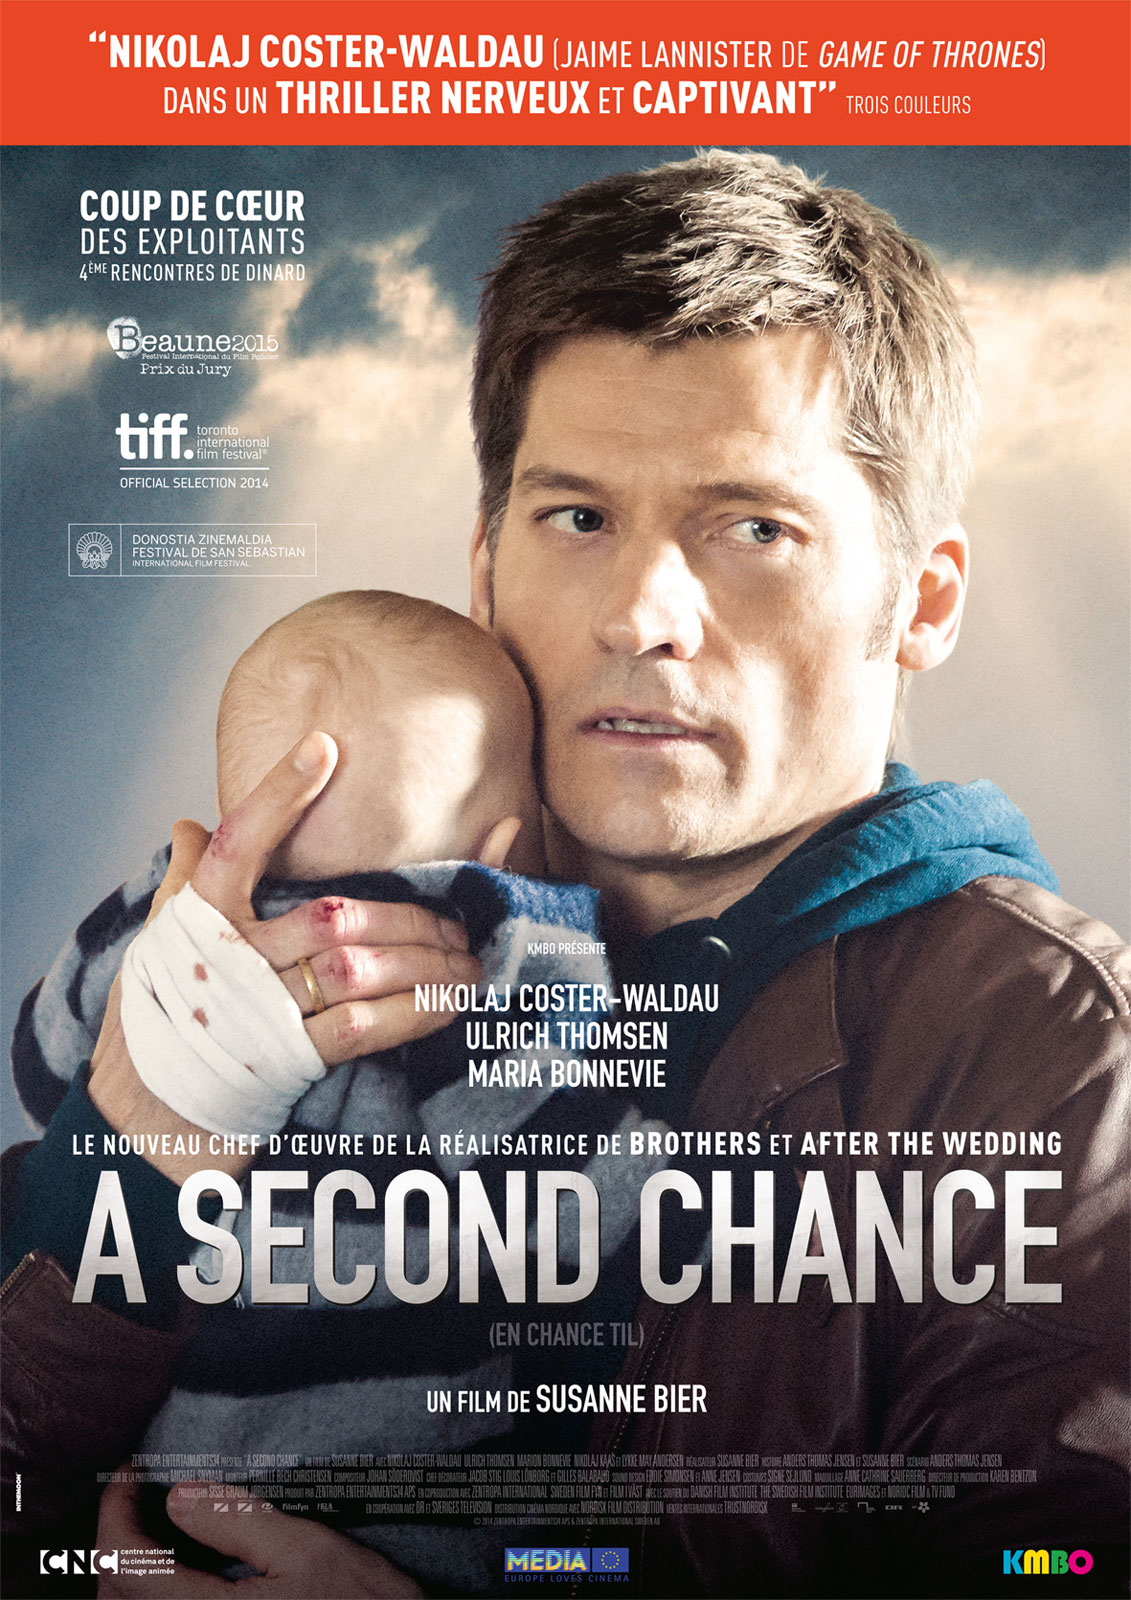 A second chance ddl